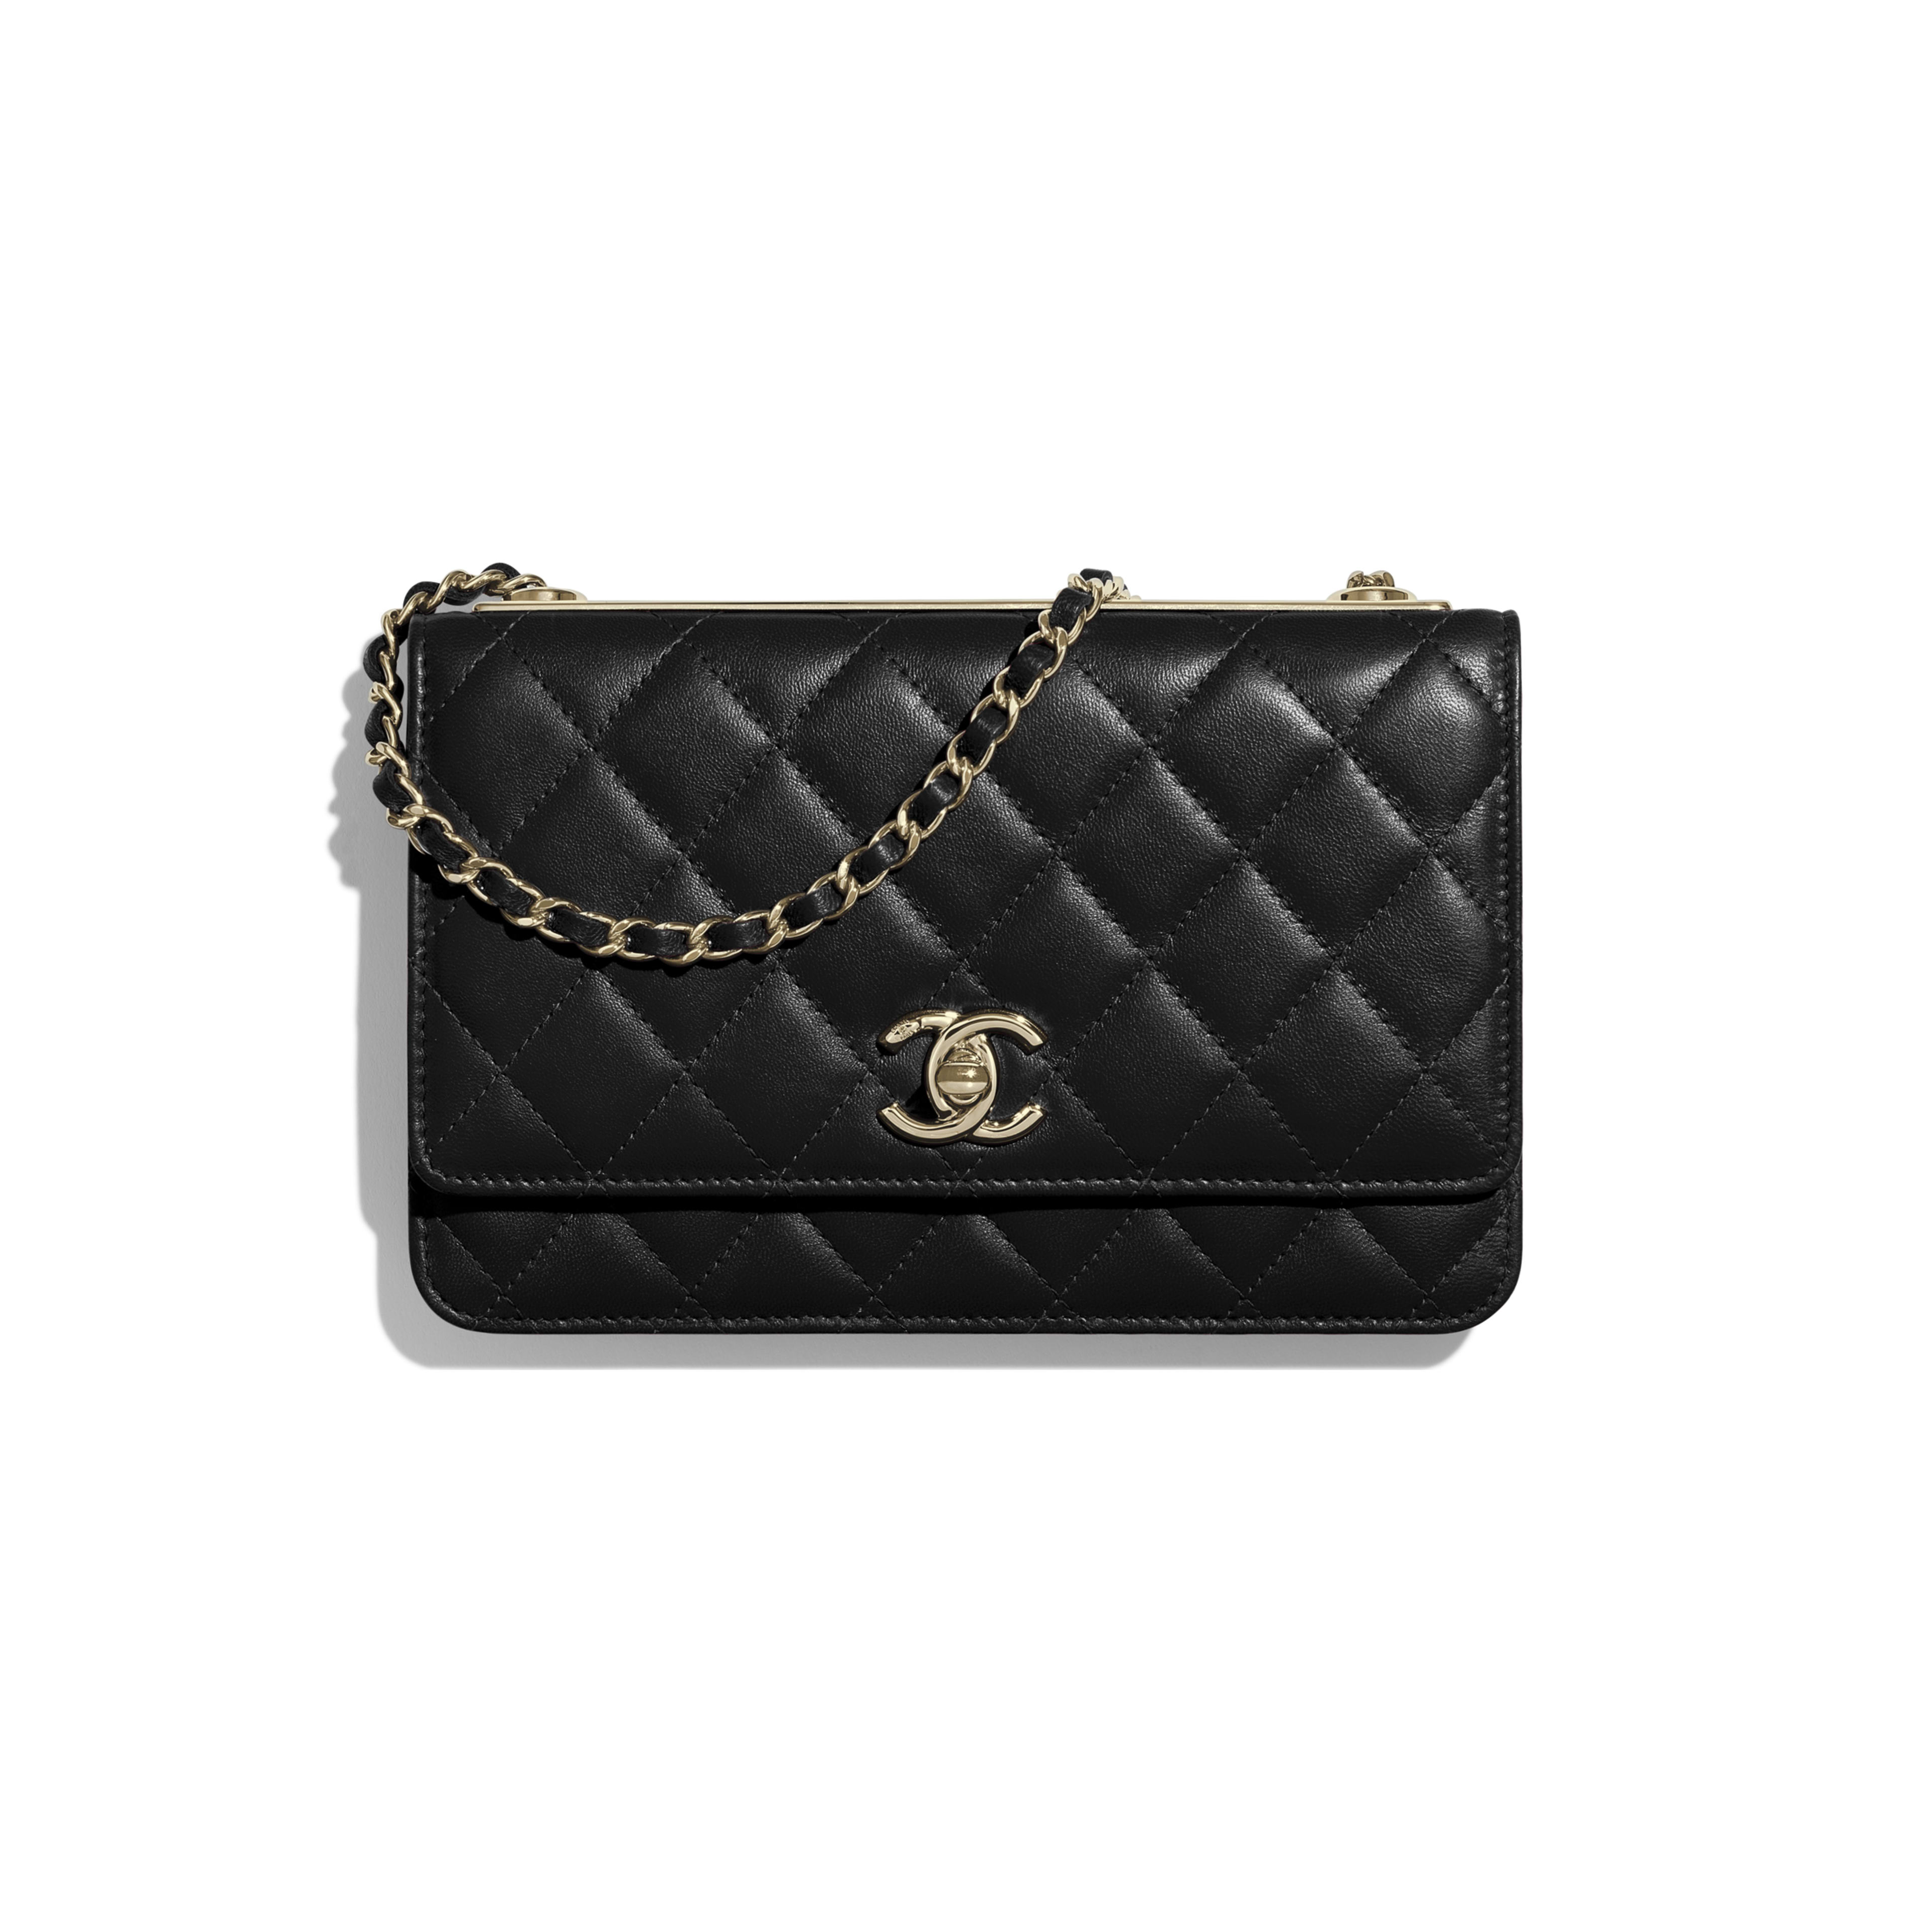 Wallet on Chain - Black - Lambskin & Gold-Tone Metal - Default view - see full sized version